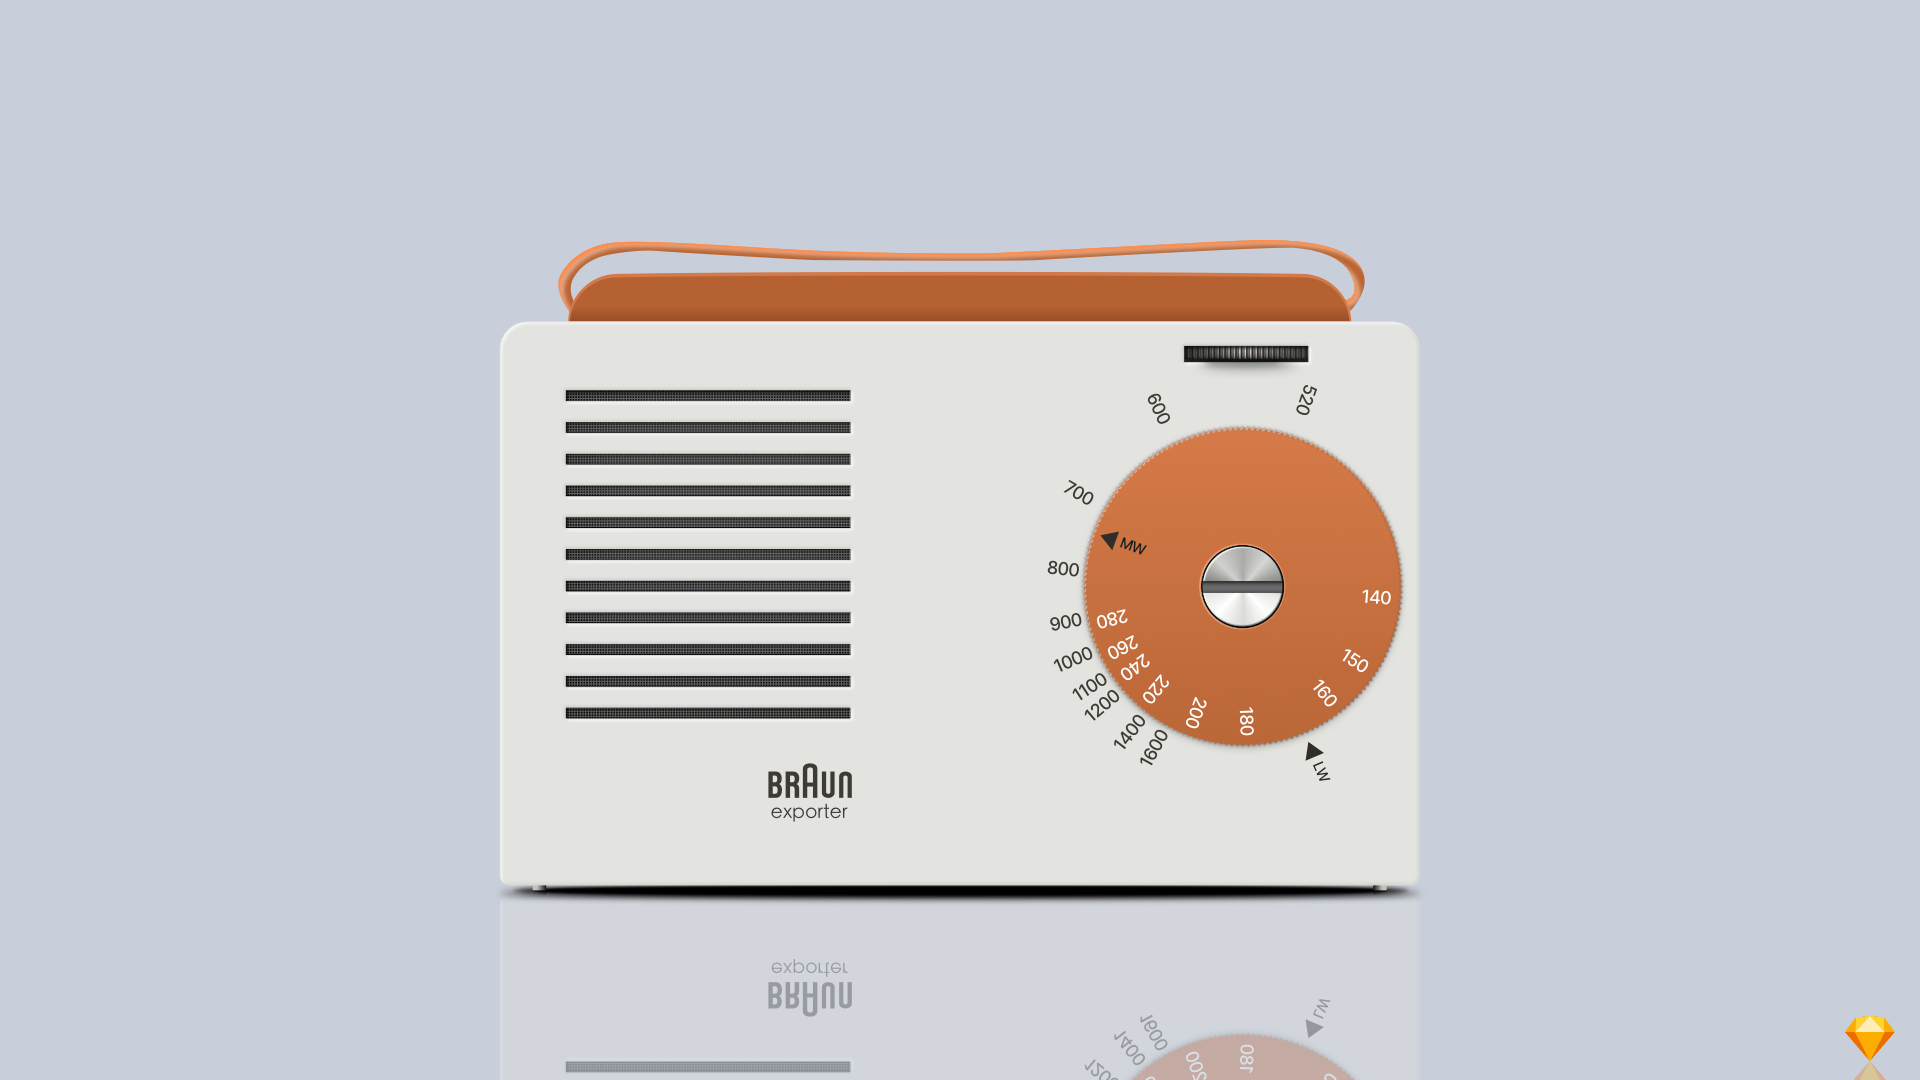 A realistic illustration of a 1956 Braun Exporter 2 Radio, created entirely within Sketch.